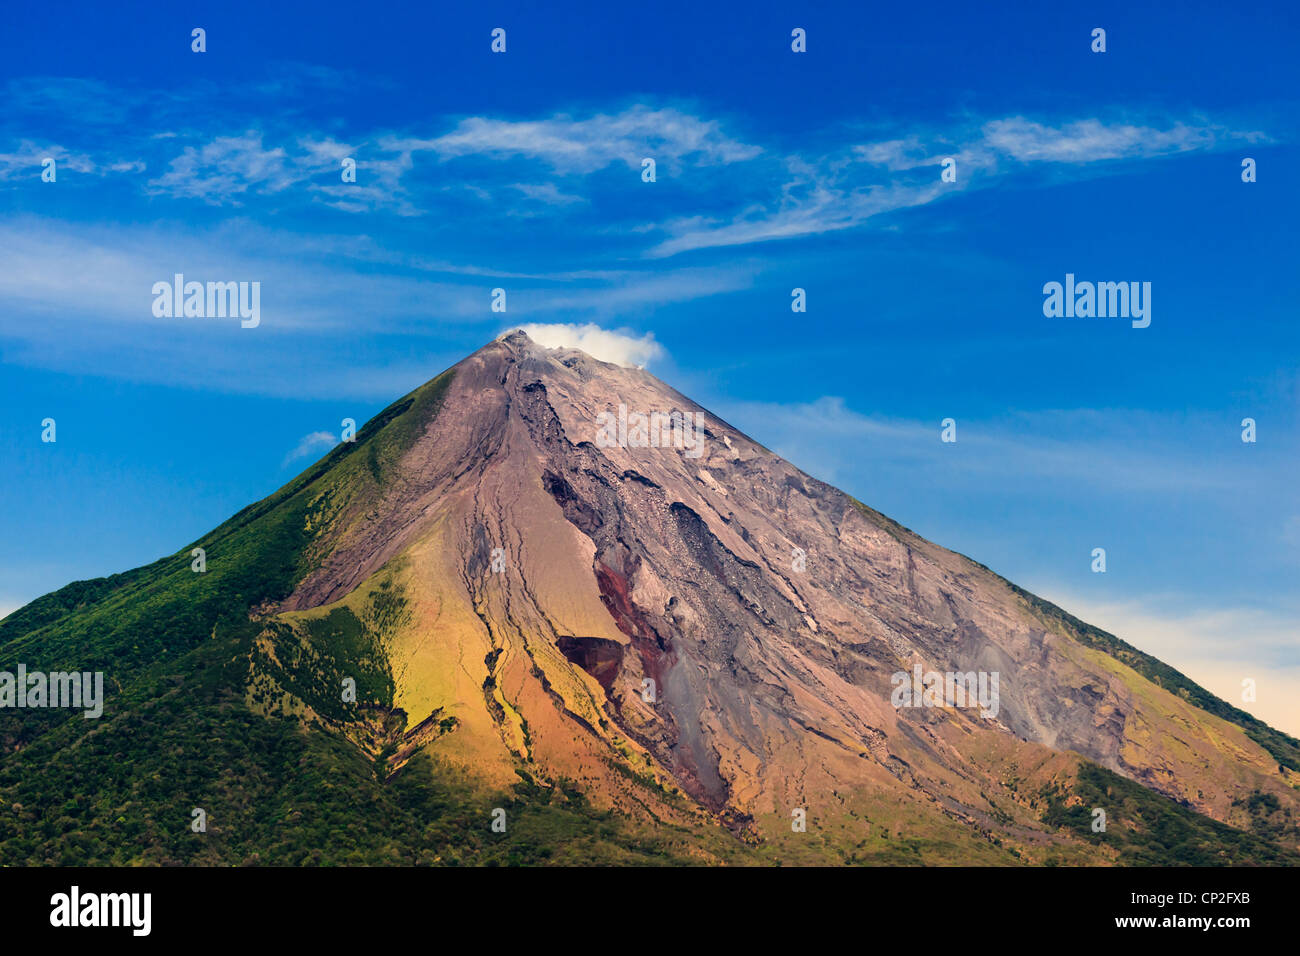 OMETEPE, NICARAGUA: View of active Conception Volcano's colorful ash deposits and green slopes. - Stock Image